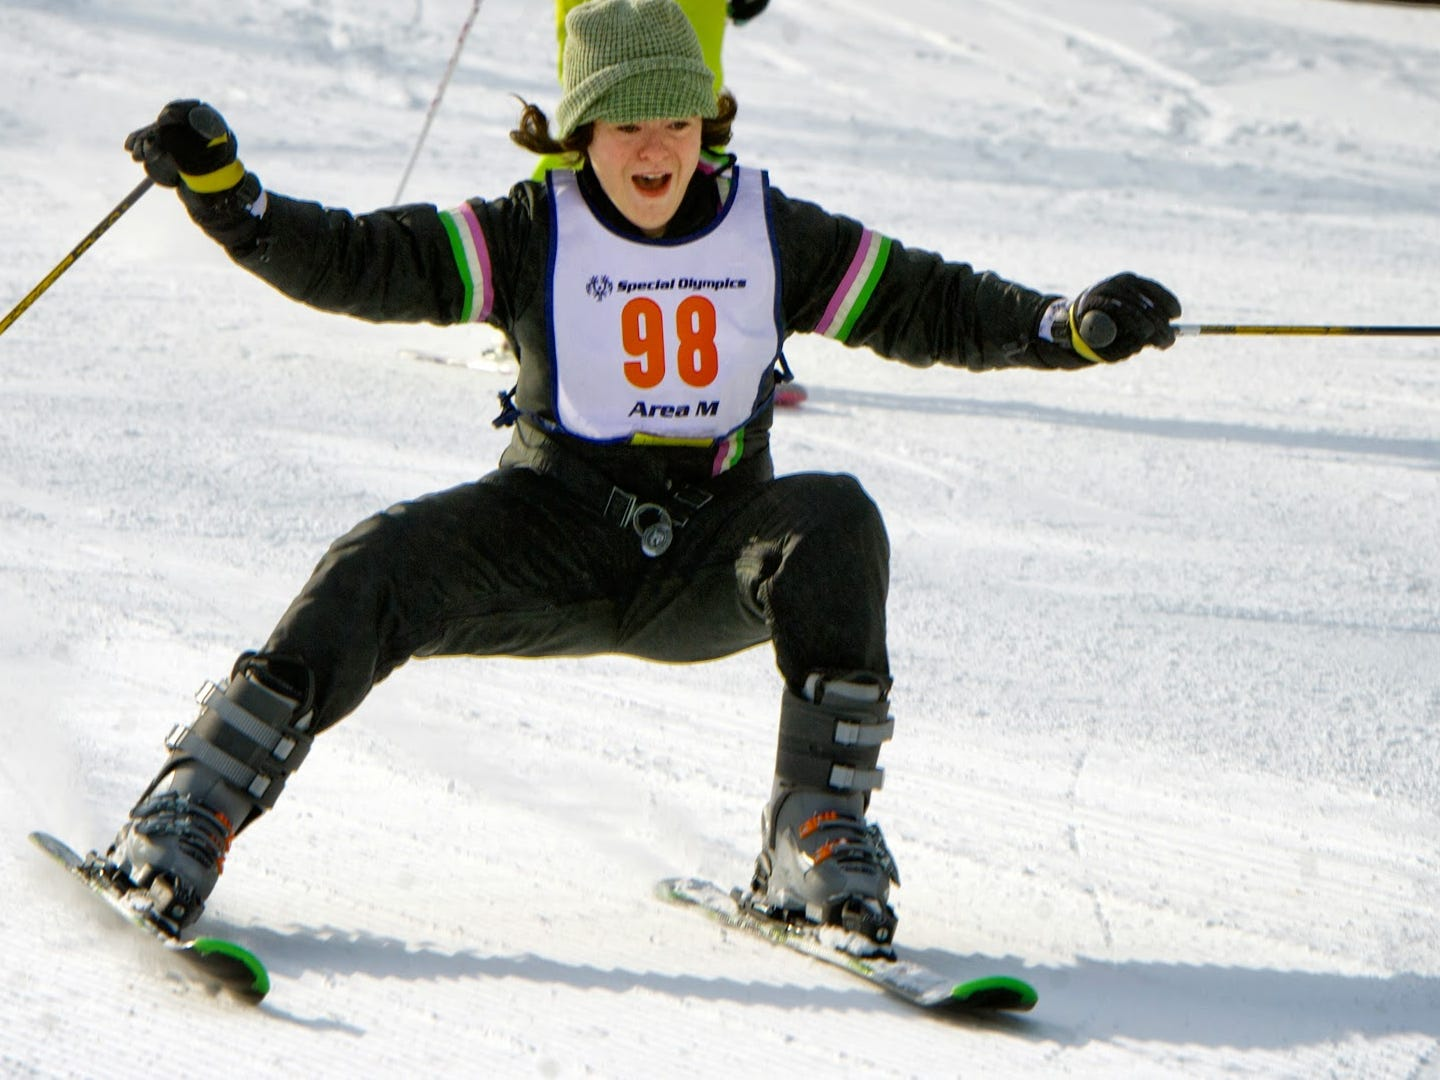 Heather Barry, a student at Cumberland Valley High School, heads down the novice course at Roundtop Mountain Resort during the Special Olympics ski competition Wednesday January 23, 2013.